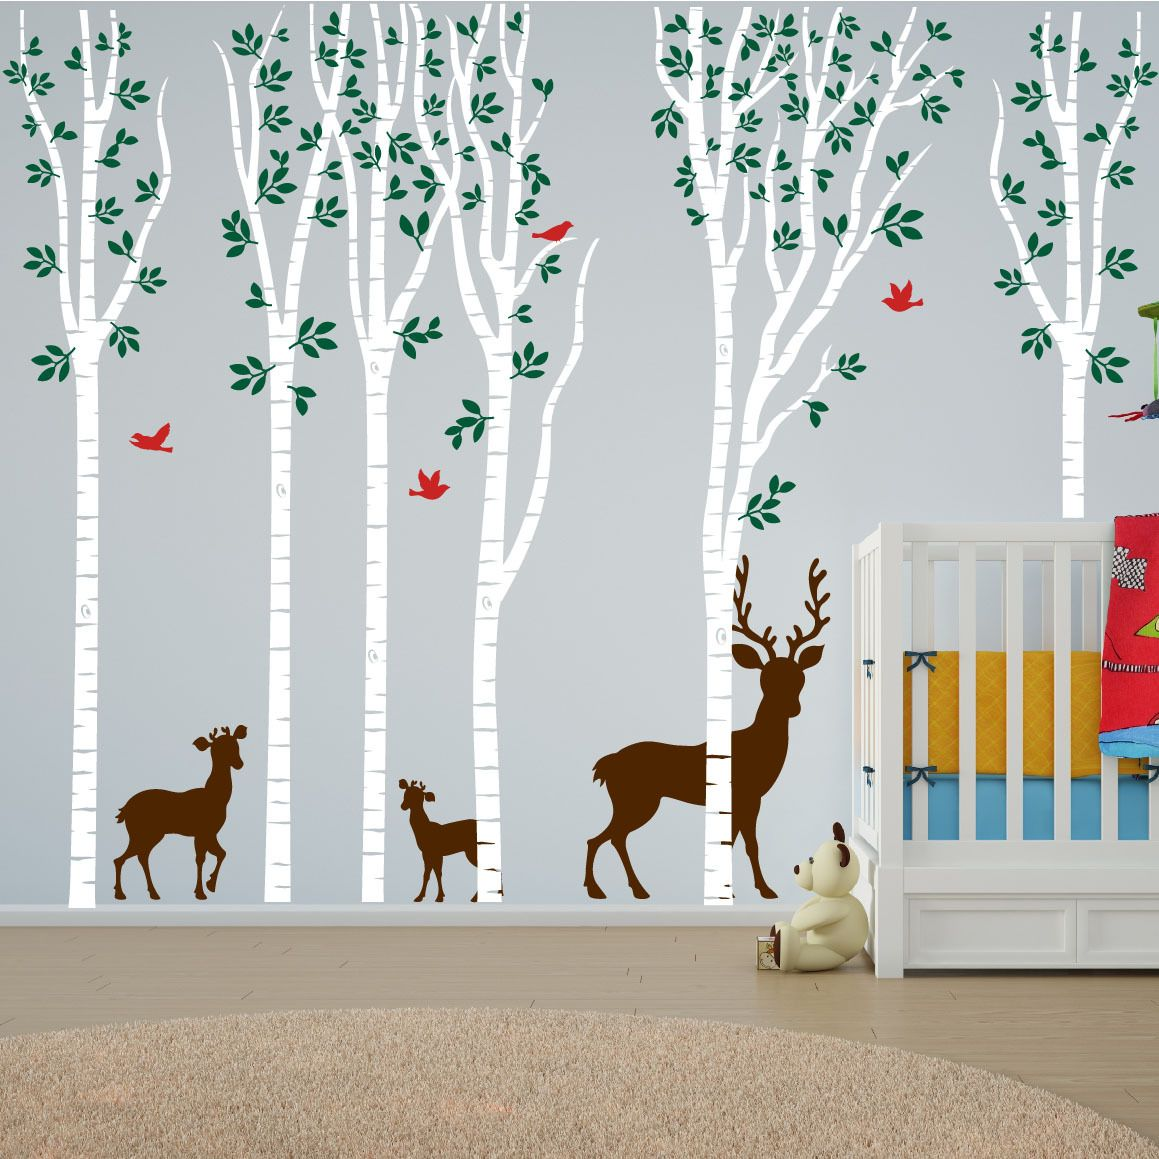 Birch Tree Forest Set Vinyl Nursery Wall Decal Deer Tree - Custom vinyl wall decals deer